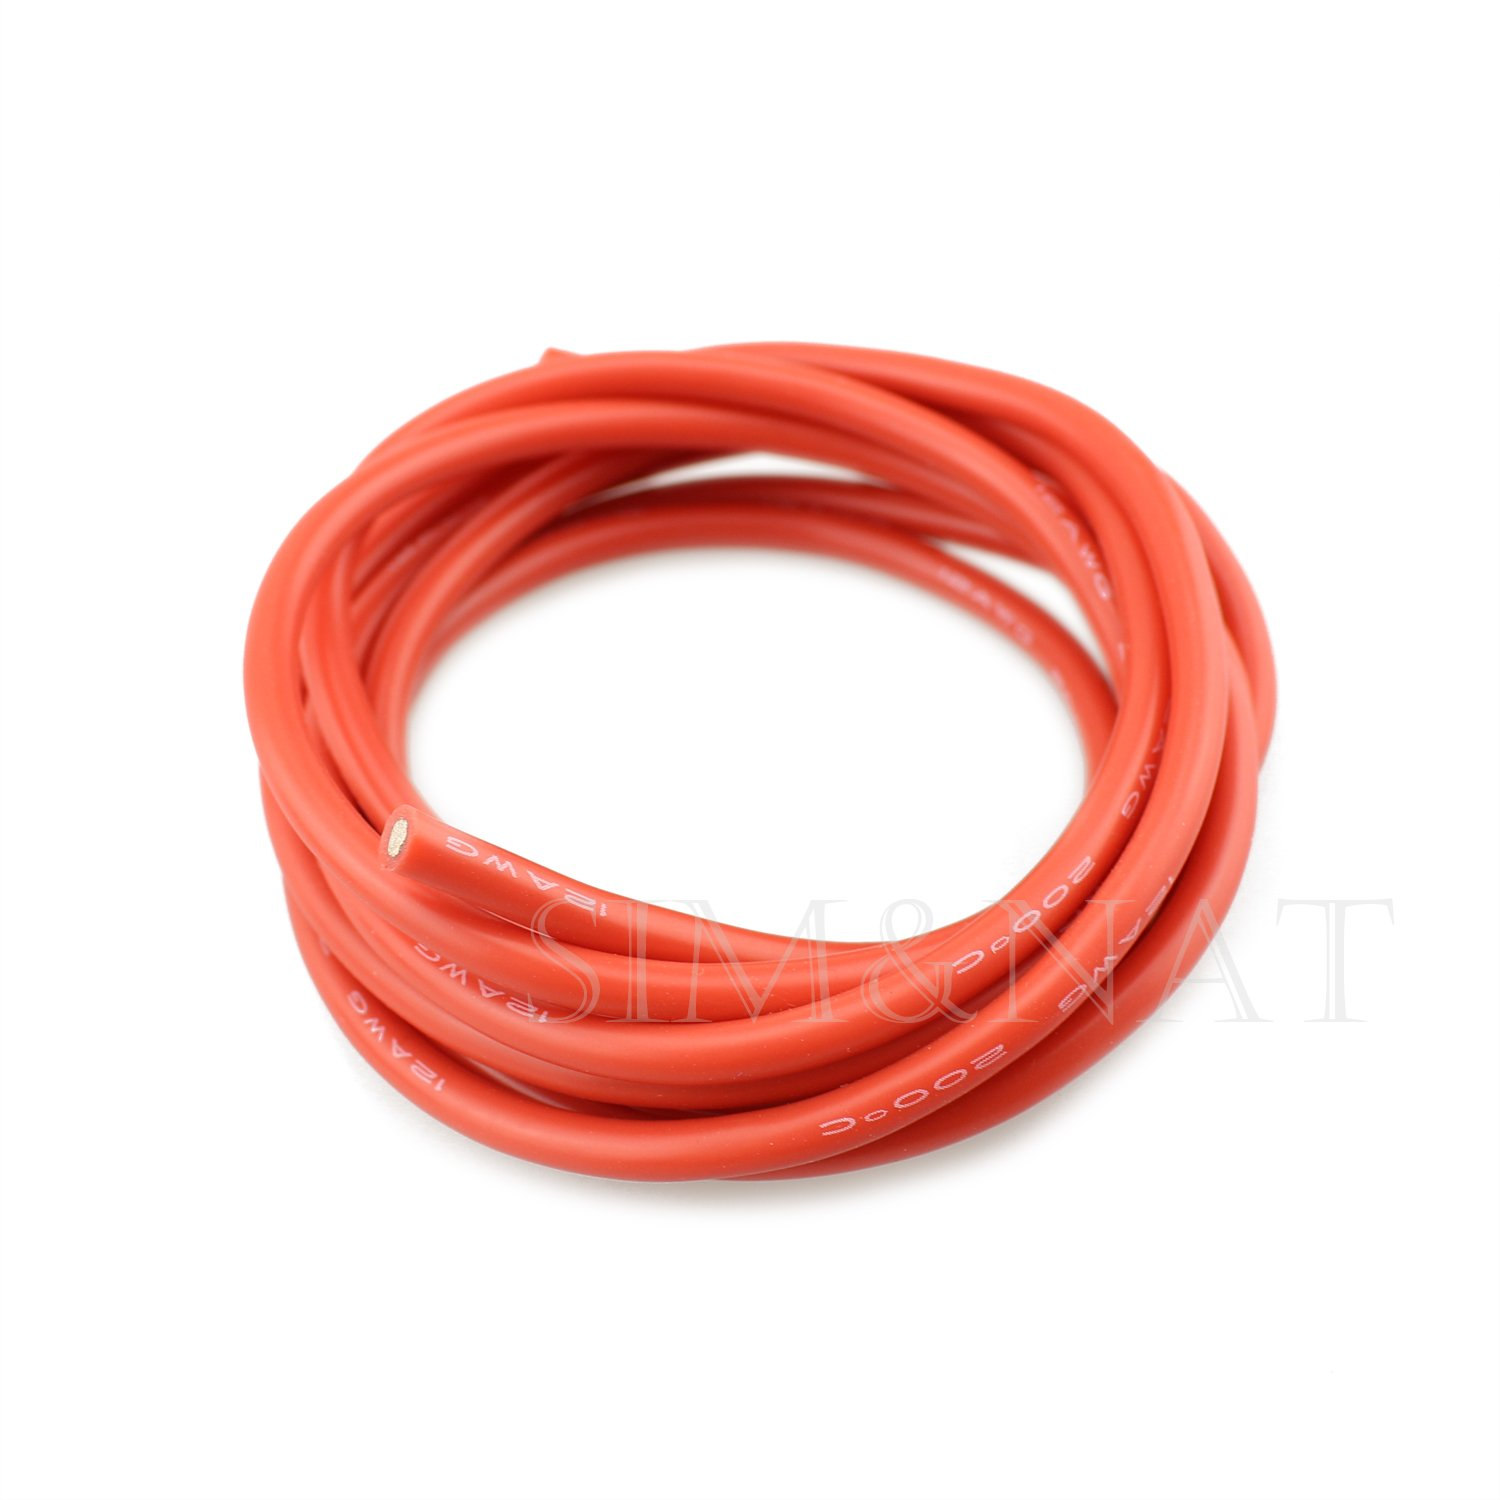 20 Gauge Silicone Jst Connector Simnat 59 Inch 2 Pin Lot Of 5 Power Jack Plug Wire Socket Lead 22 Awg Led Male Female Rcy Connectors Cable For Lamp Strip Rc Toys Battery 10